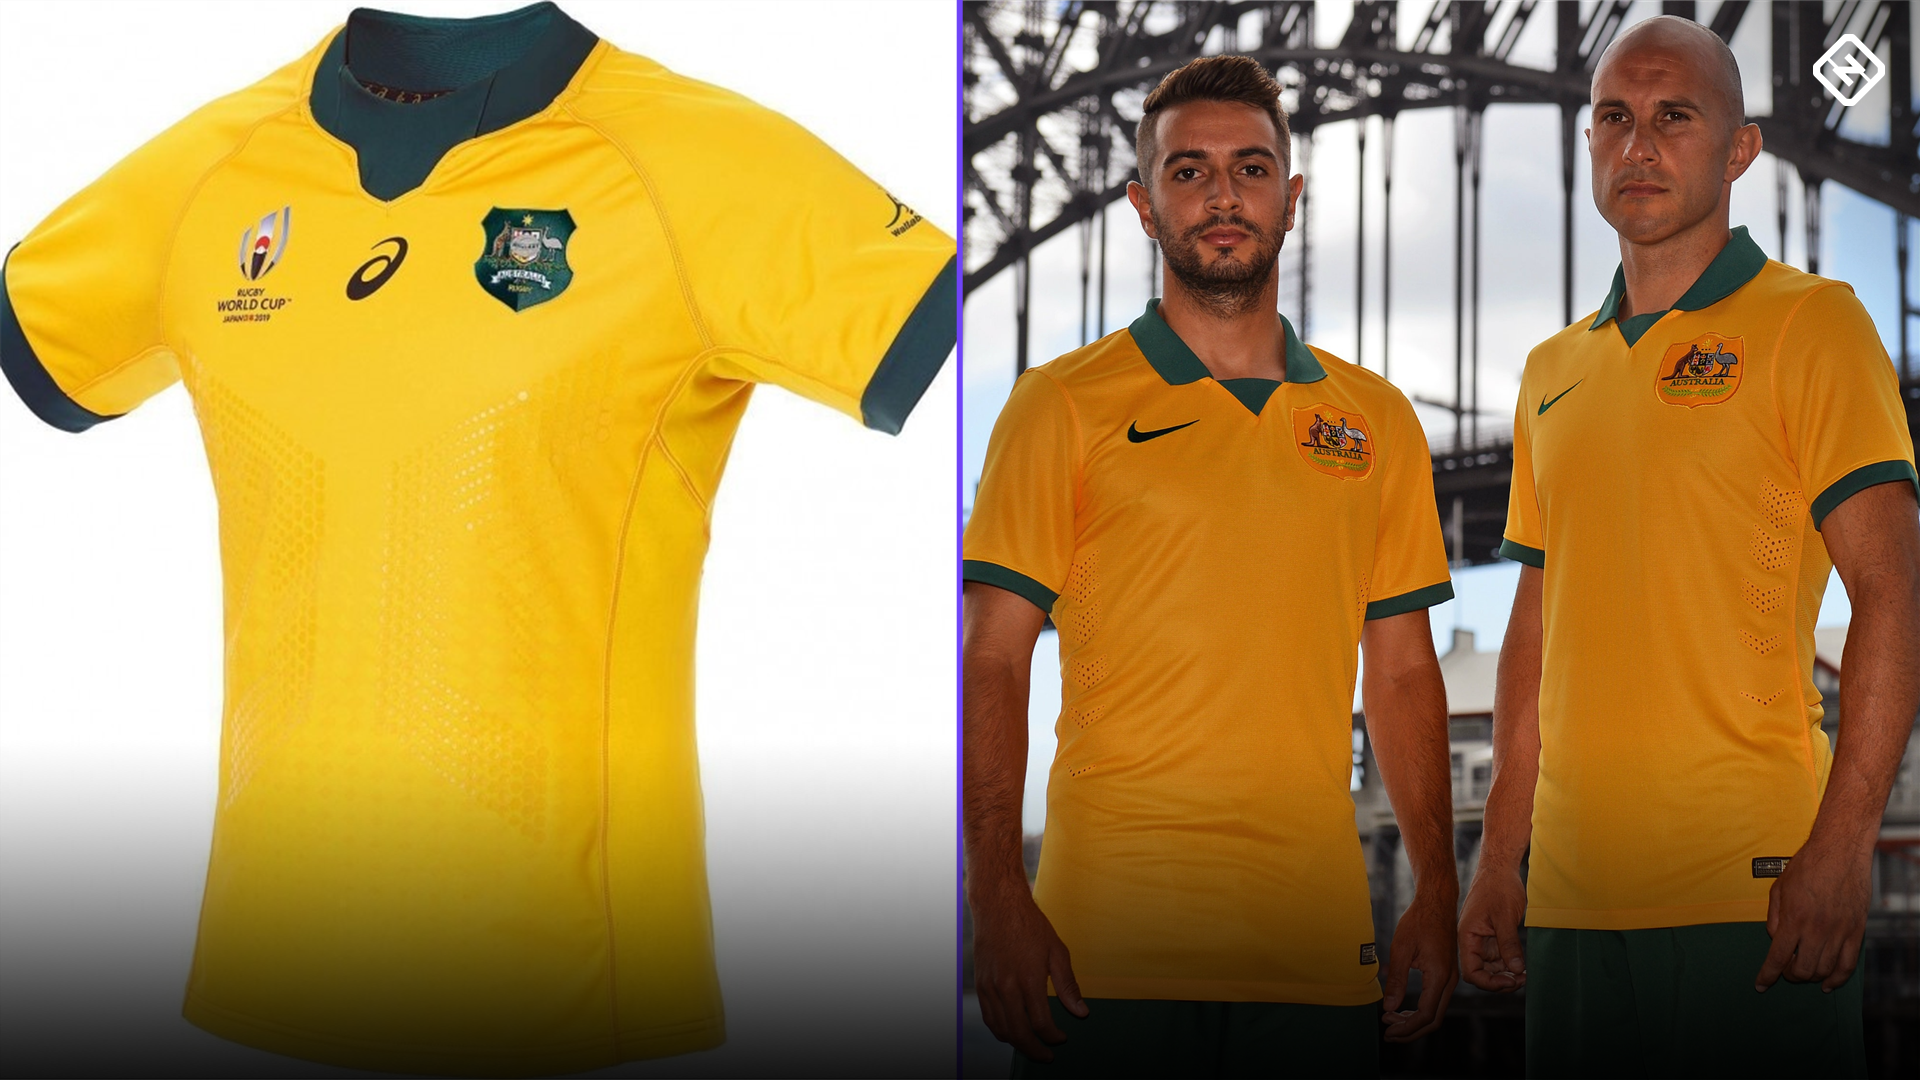 876aac16c Wallabies reveal World Cup jersey remarkably similar to Socceroos  kit